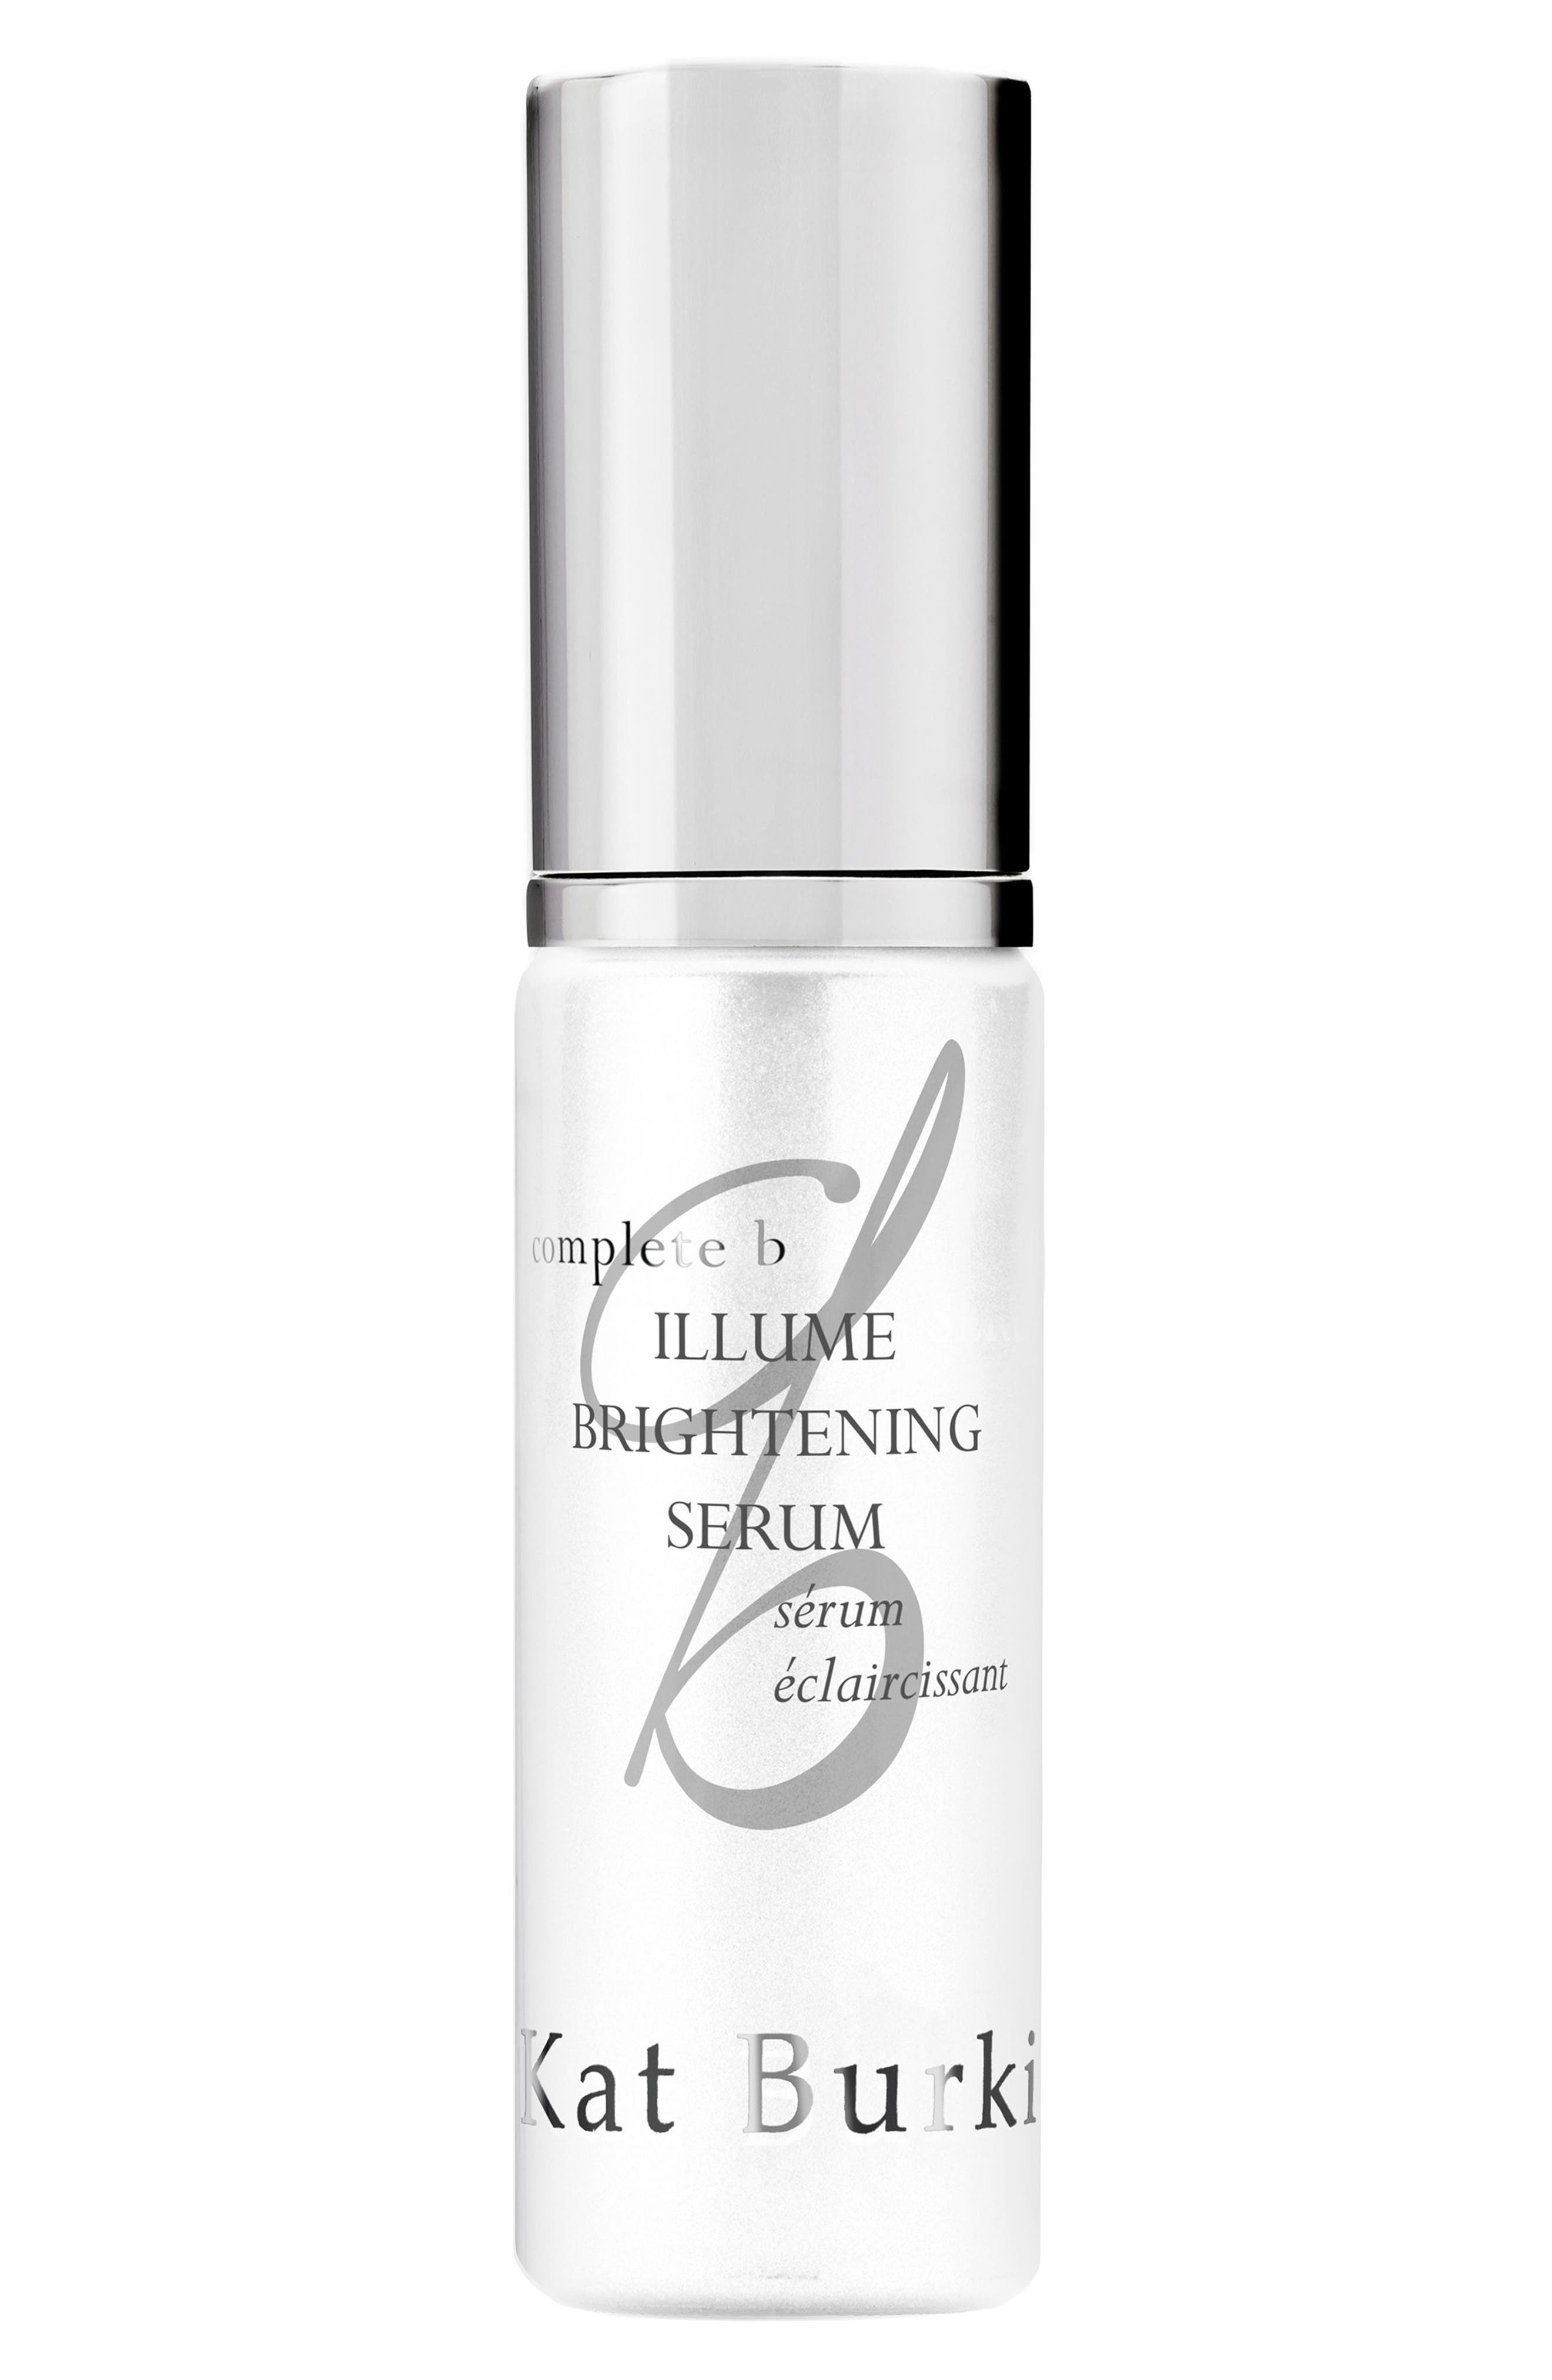 SPACE.NK.apothecary Kat Burki complete b Illume Repair Brightening Serum,                         Main,                         color, NO COLOR